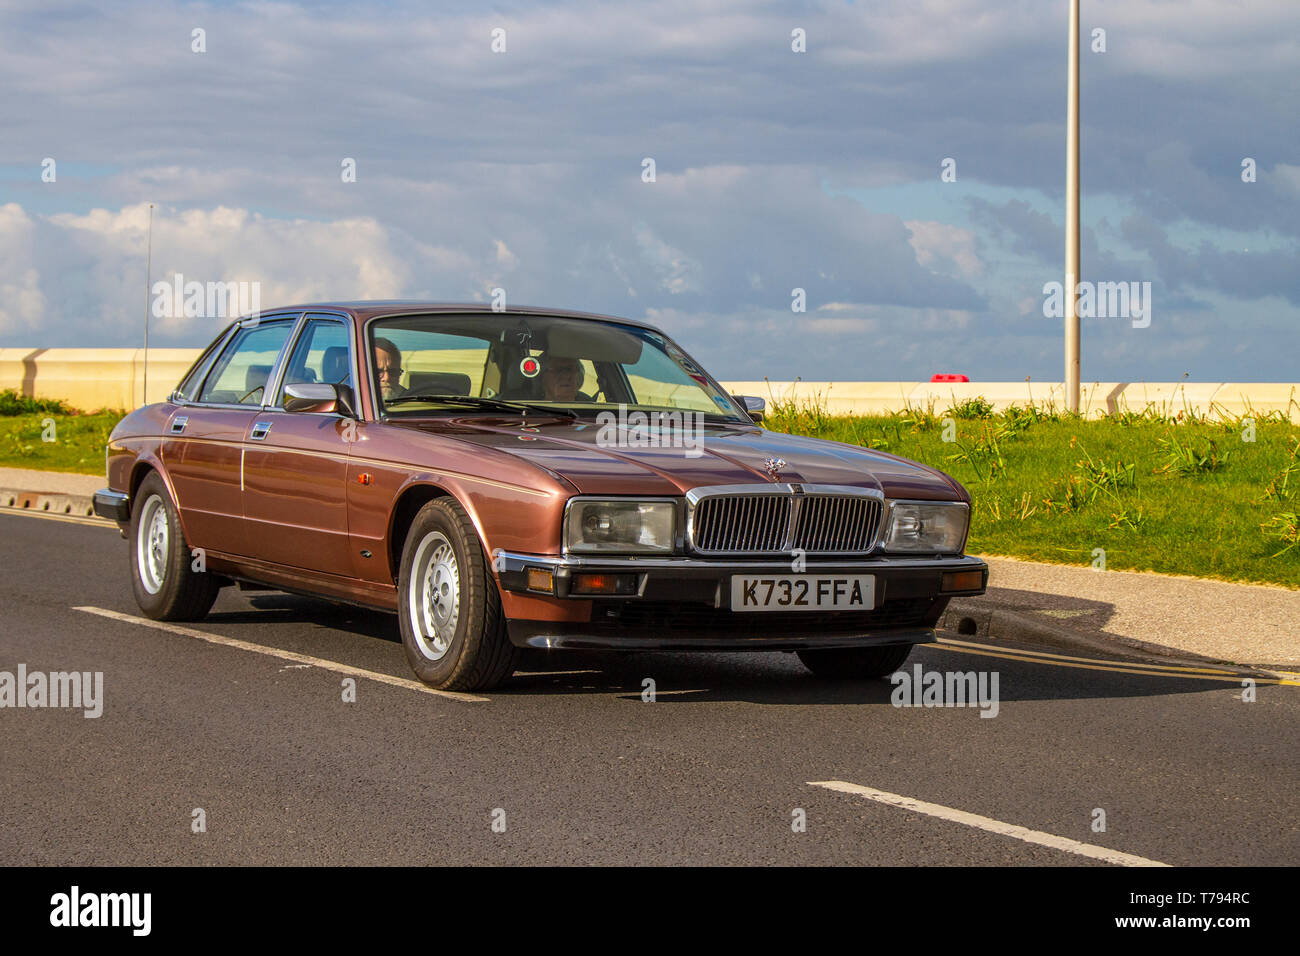 1992 Jaguar Sovereign 4.0 at Cleveleys Spring Car Show at Jubilee Gardens in 2019. A new location for a Classic Vehicle show from Blackpool Vehicle Preservation Group (BVPG). - Stock Image